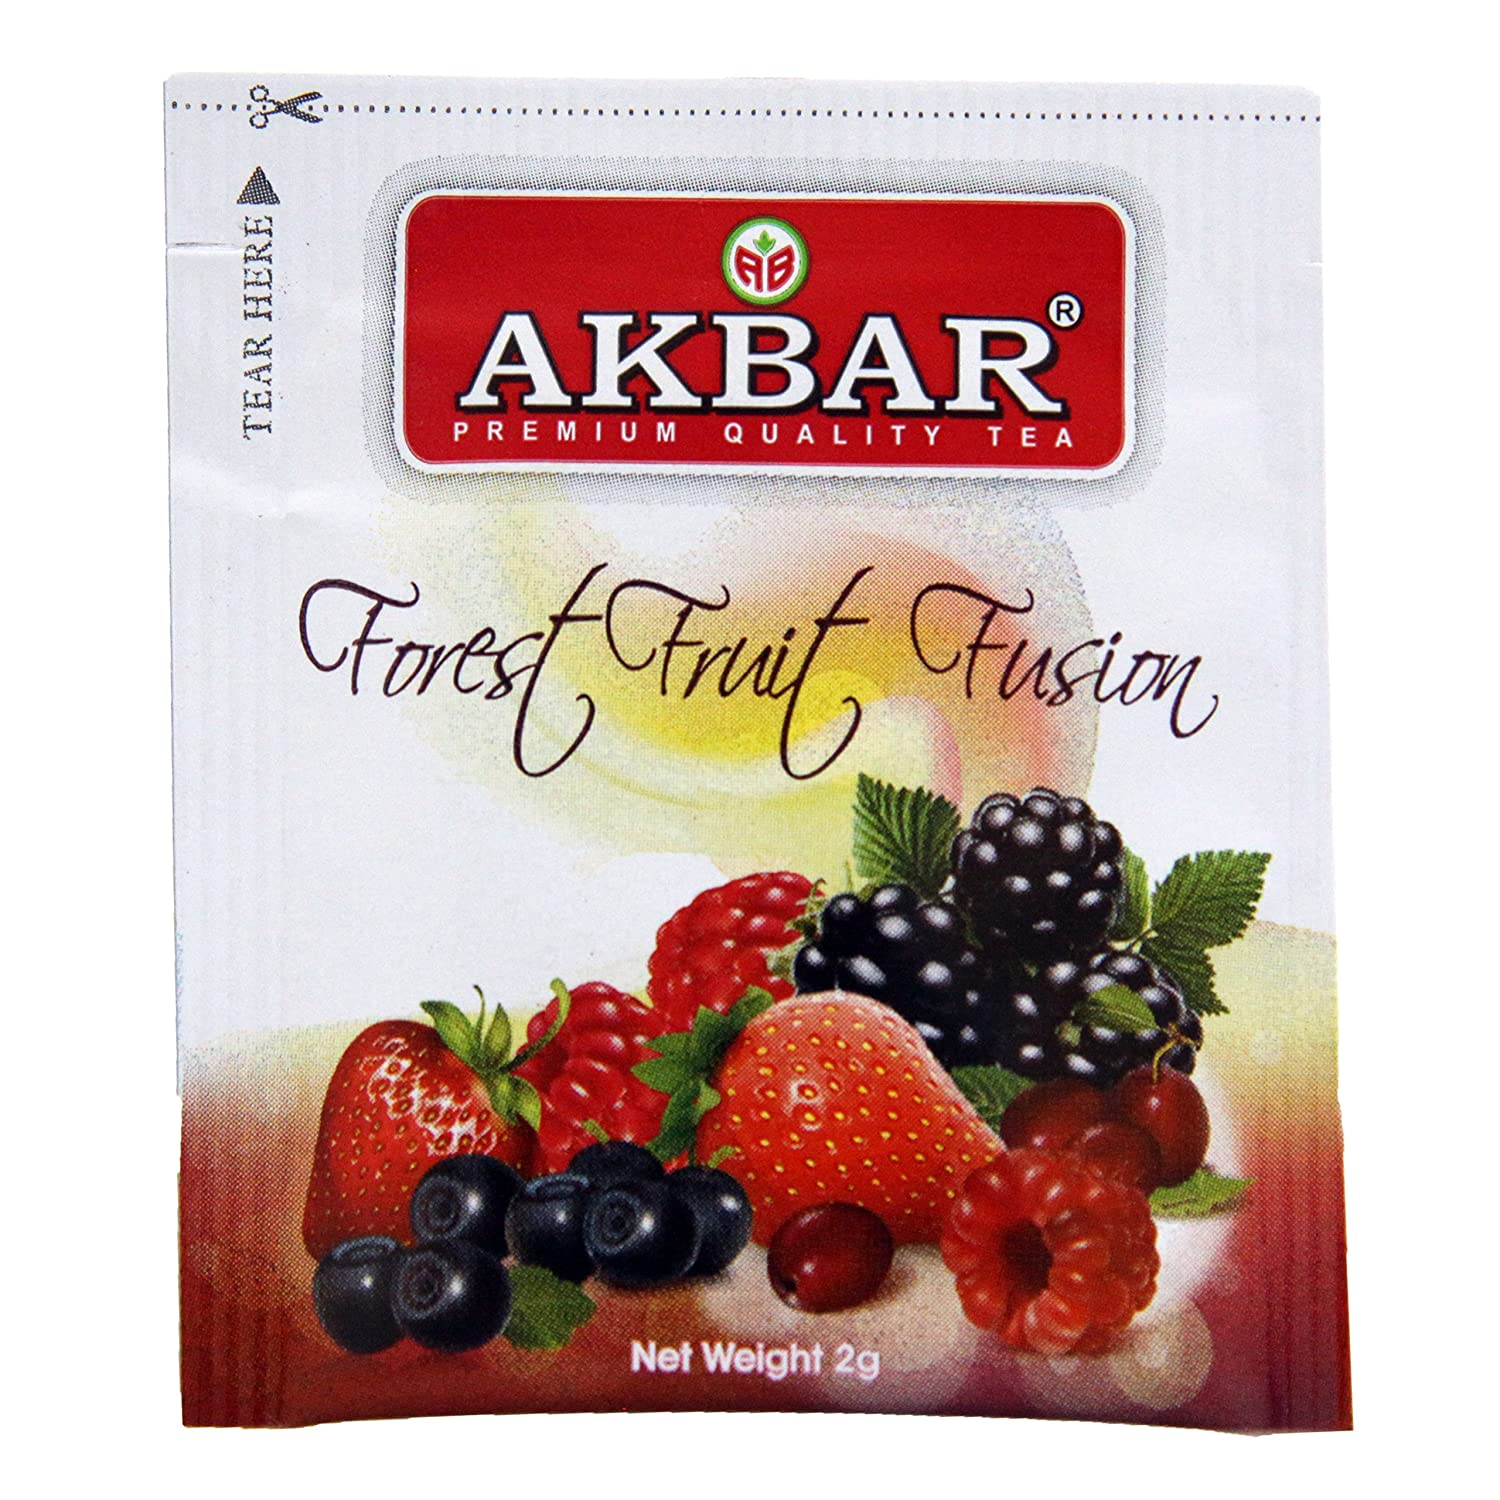 Akbar | Forest Fruit Fusion Tea | Food Service Pack | 100% Single Origin | Non GMO | Pure Ceylon Black Tea with real Strawberry, Blueberry, Cherry, and Blackcurrant pieces | All Natural | Pack of 100